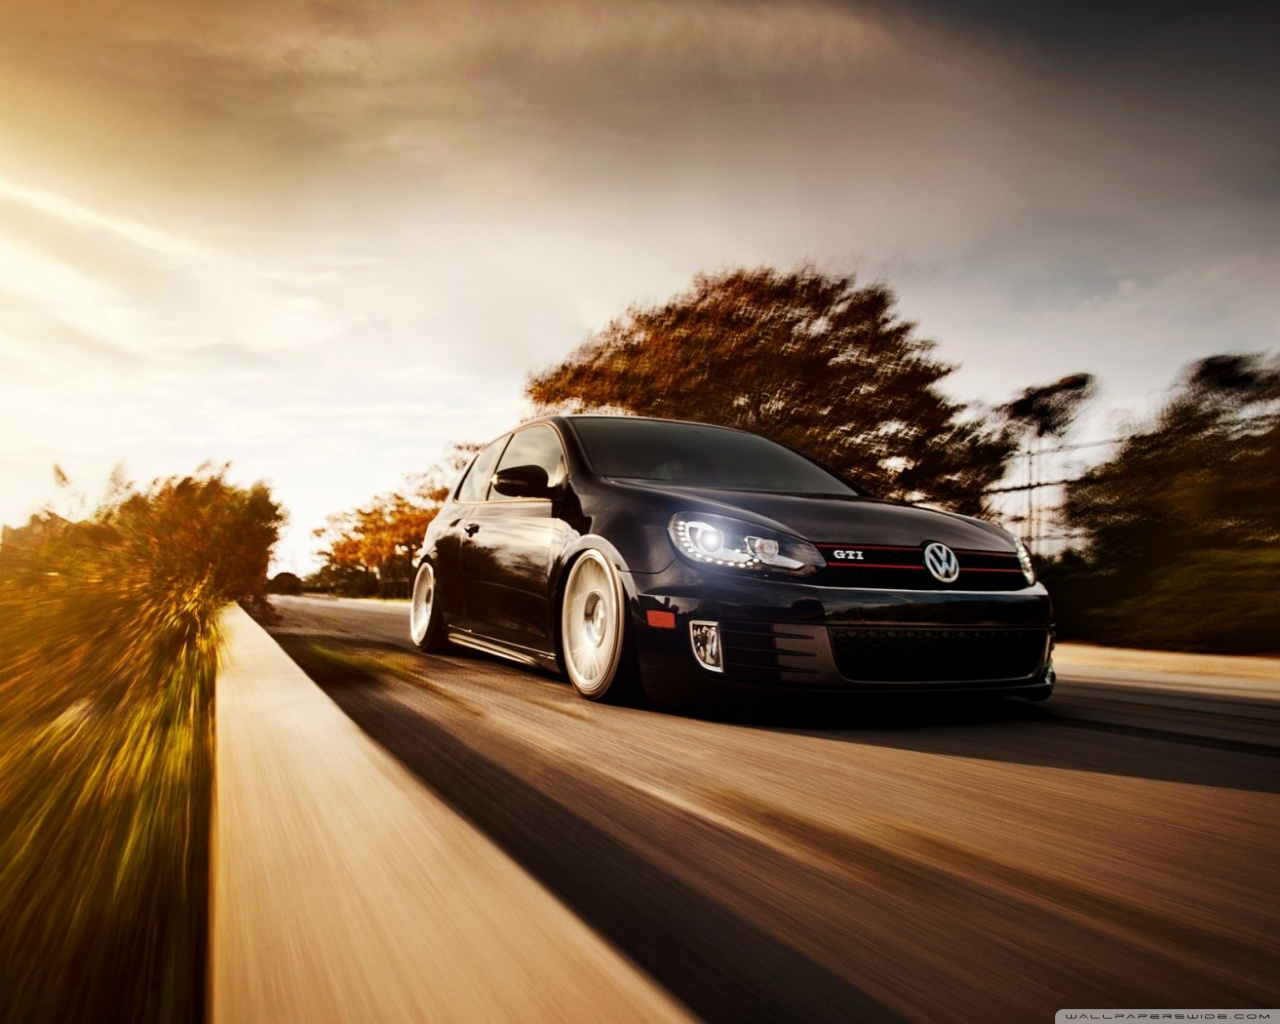 Volkswagen HD desktop wallpaper : High Definition : Fullscreen